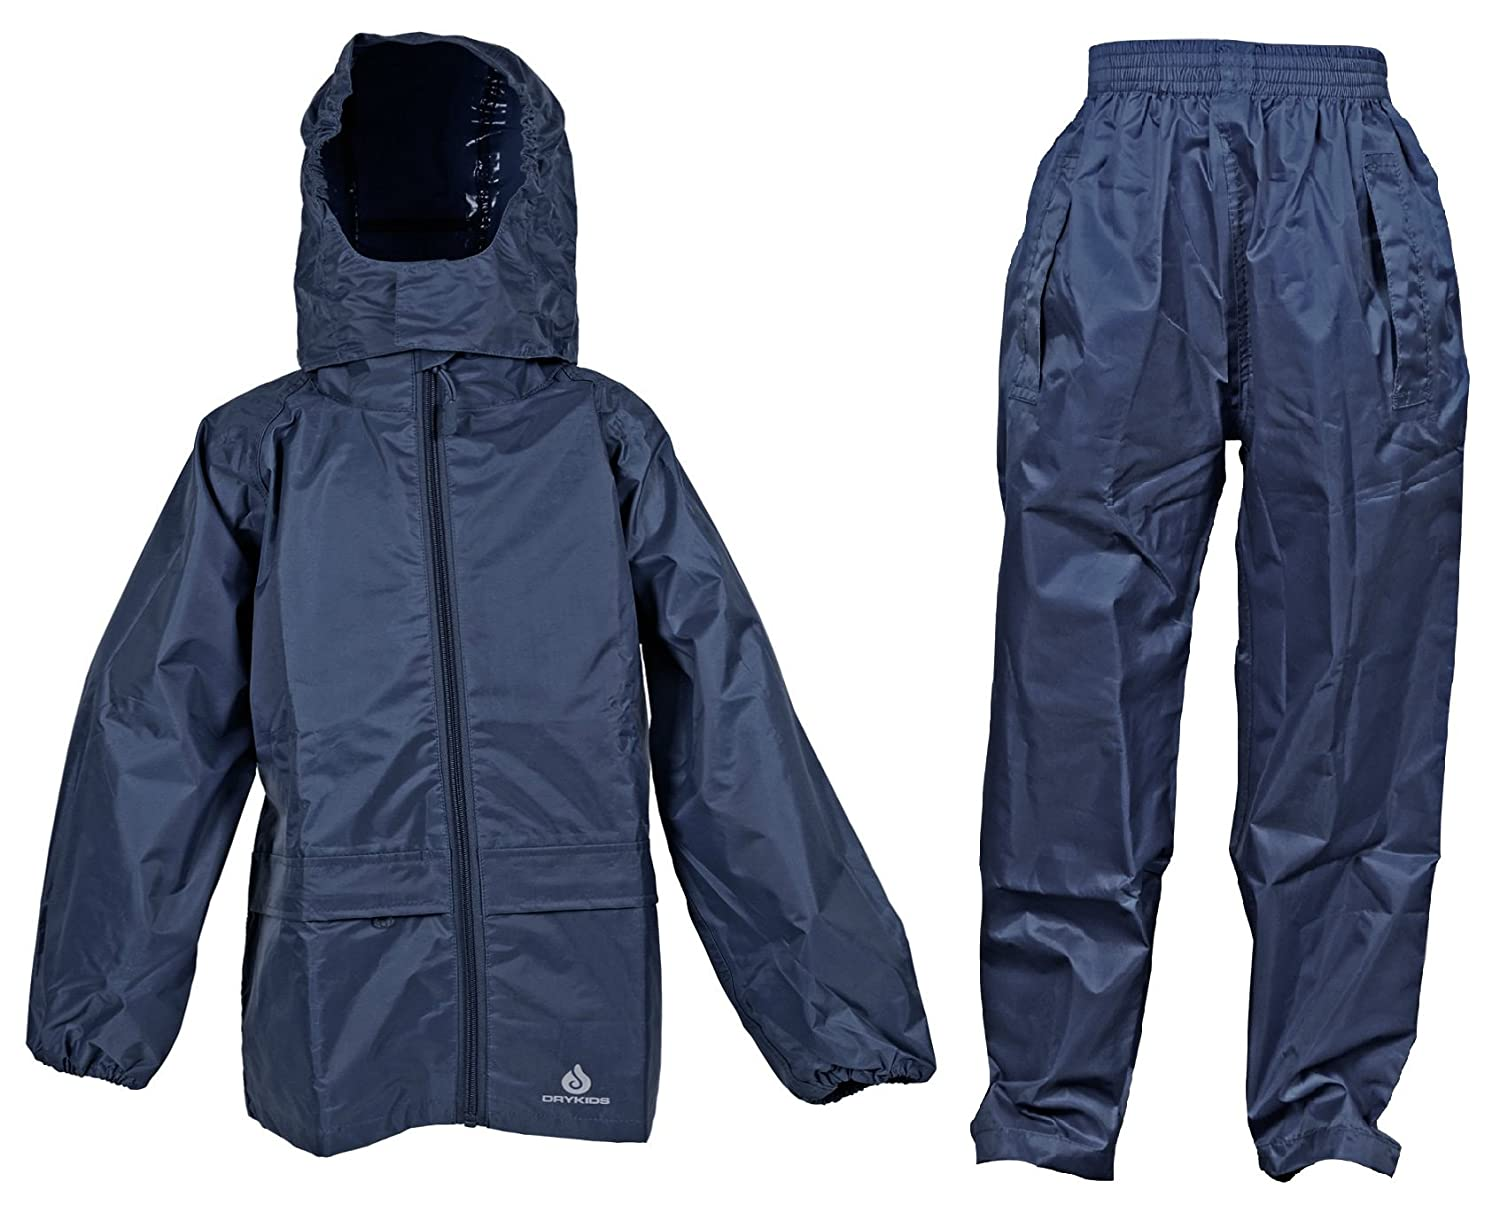 DRY KIDS Adult Waterproof Jacket and Overtrousers Set. Rainwear for Men and Women. Navy, Royal and Green. Pink is also available in the Womens category